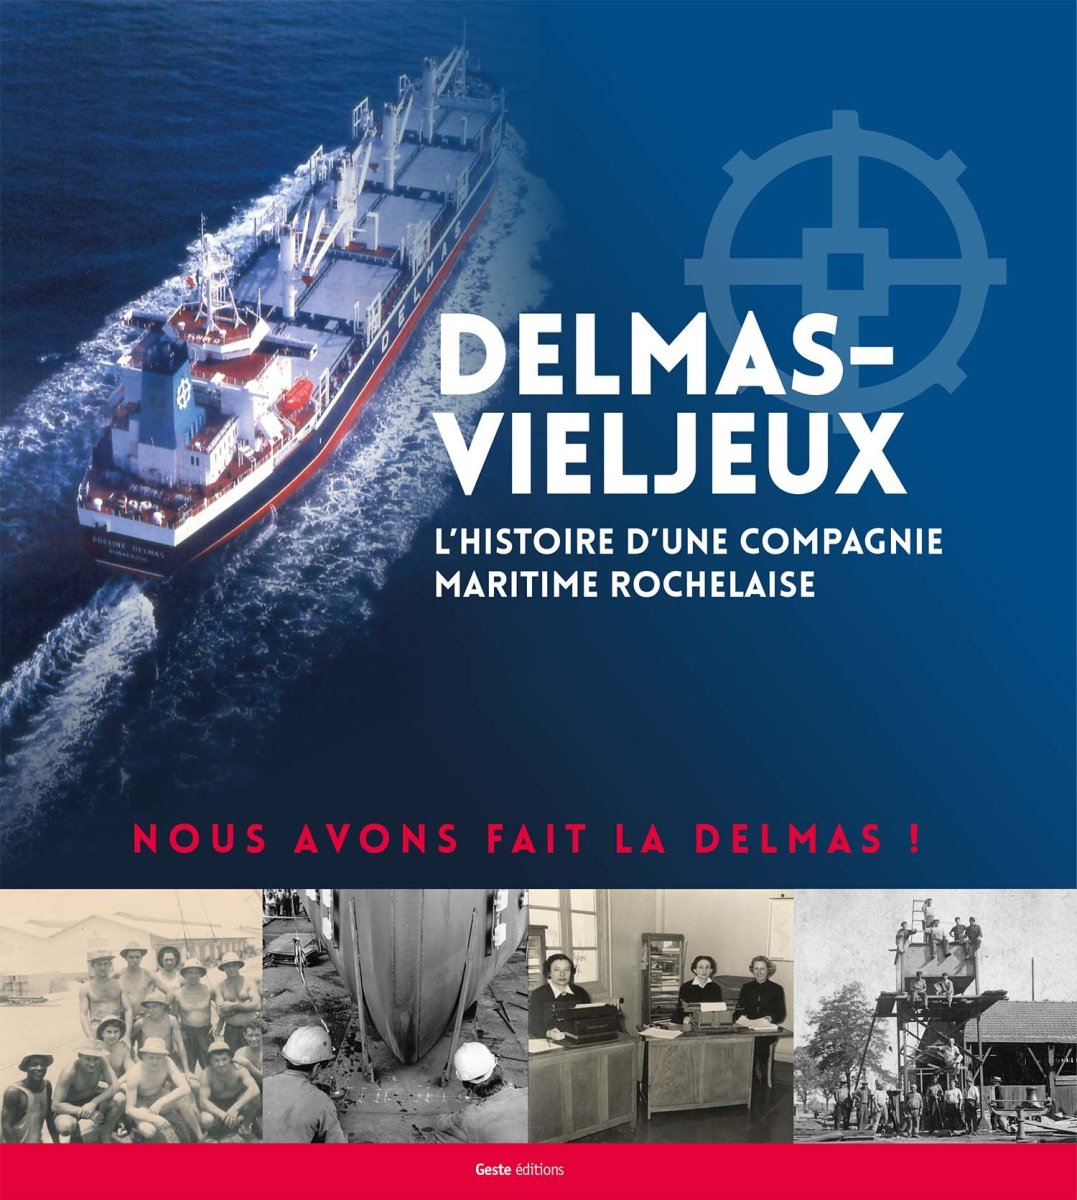 Confused and Wandering: A Review of Delmas-Vieljeux, l'Histoire d'une Compagnie Maritime Rochelaise